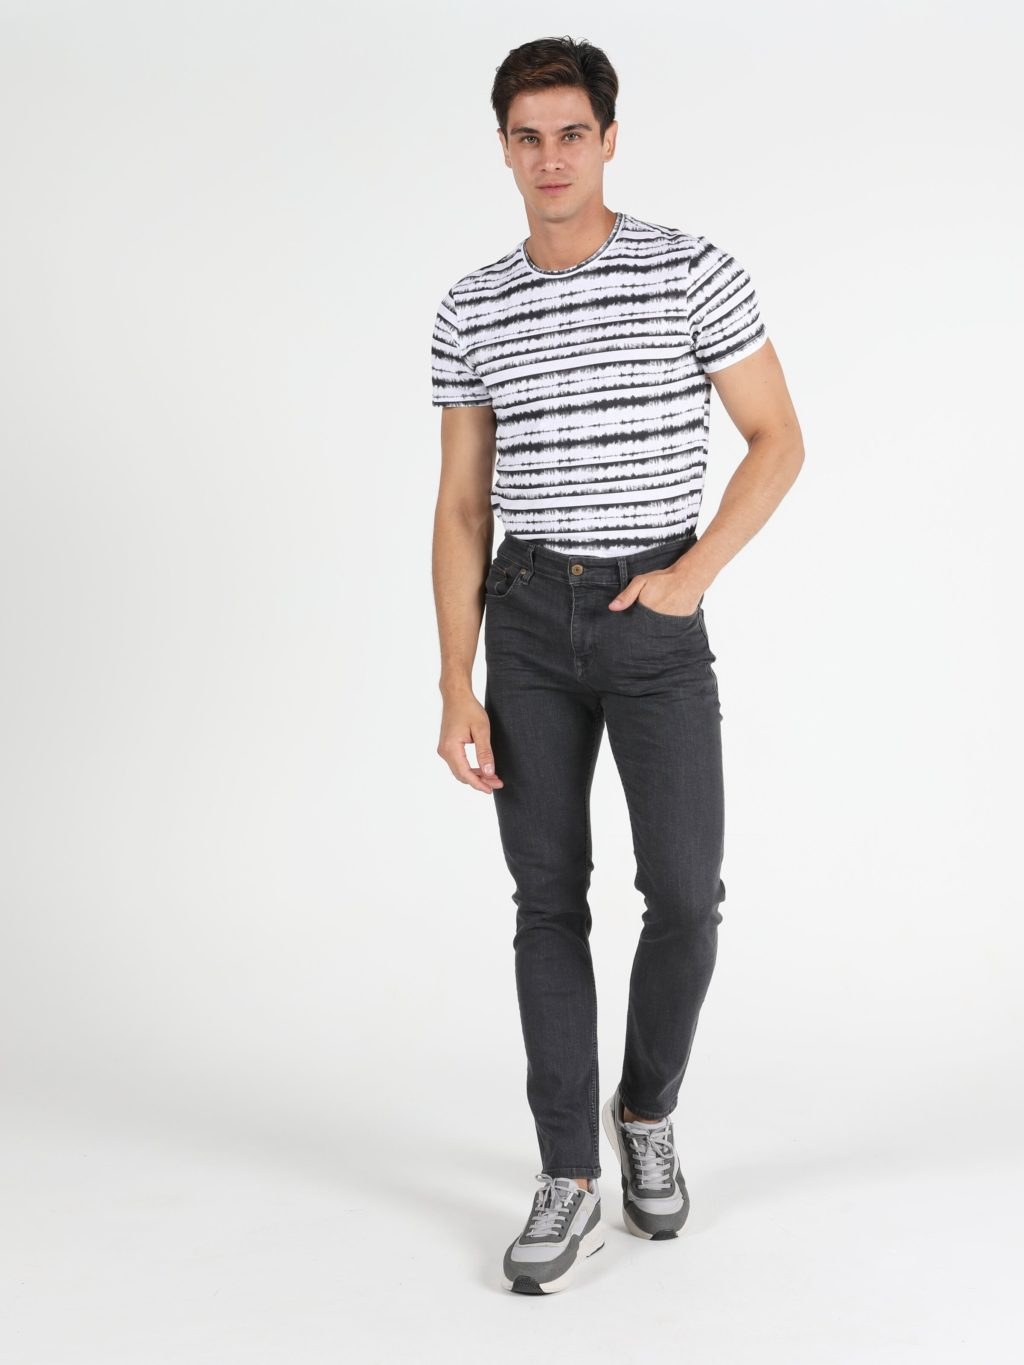 T-shirt-and-jean-trousers-1024x1365 120+ Fashion Trends and Looks for College Students in 2021